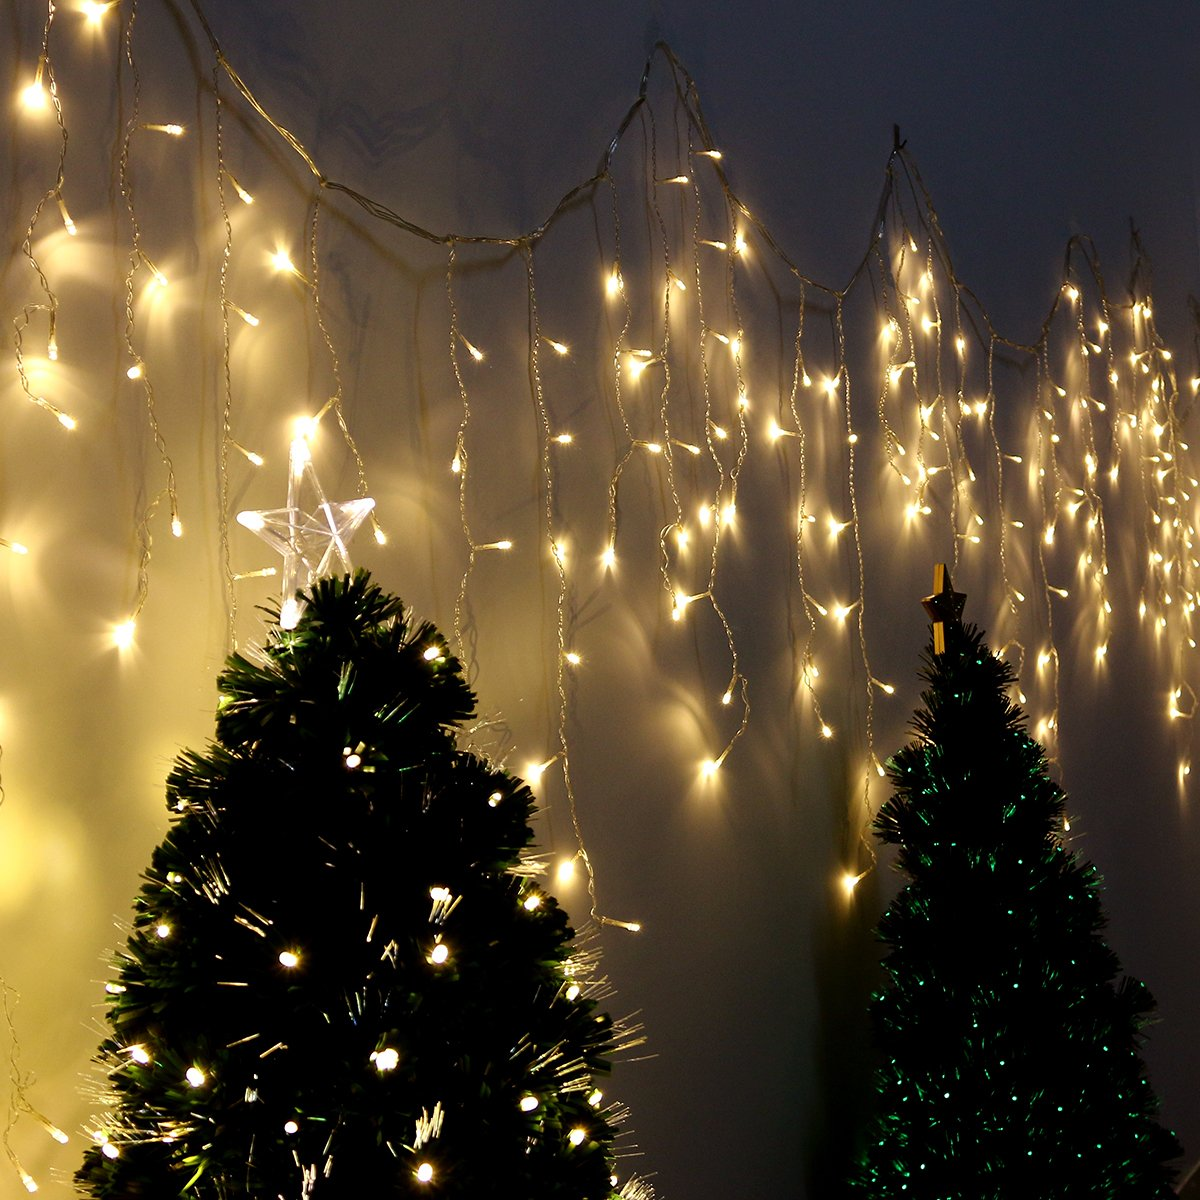 LED Icicle Lights, YUNLIGHTS 16.5 ft 216 LED Plug in Fairy String Lights, Warm White Curtain Christmas Lights for Bedroom Patio Yard Garden Wedding Party